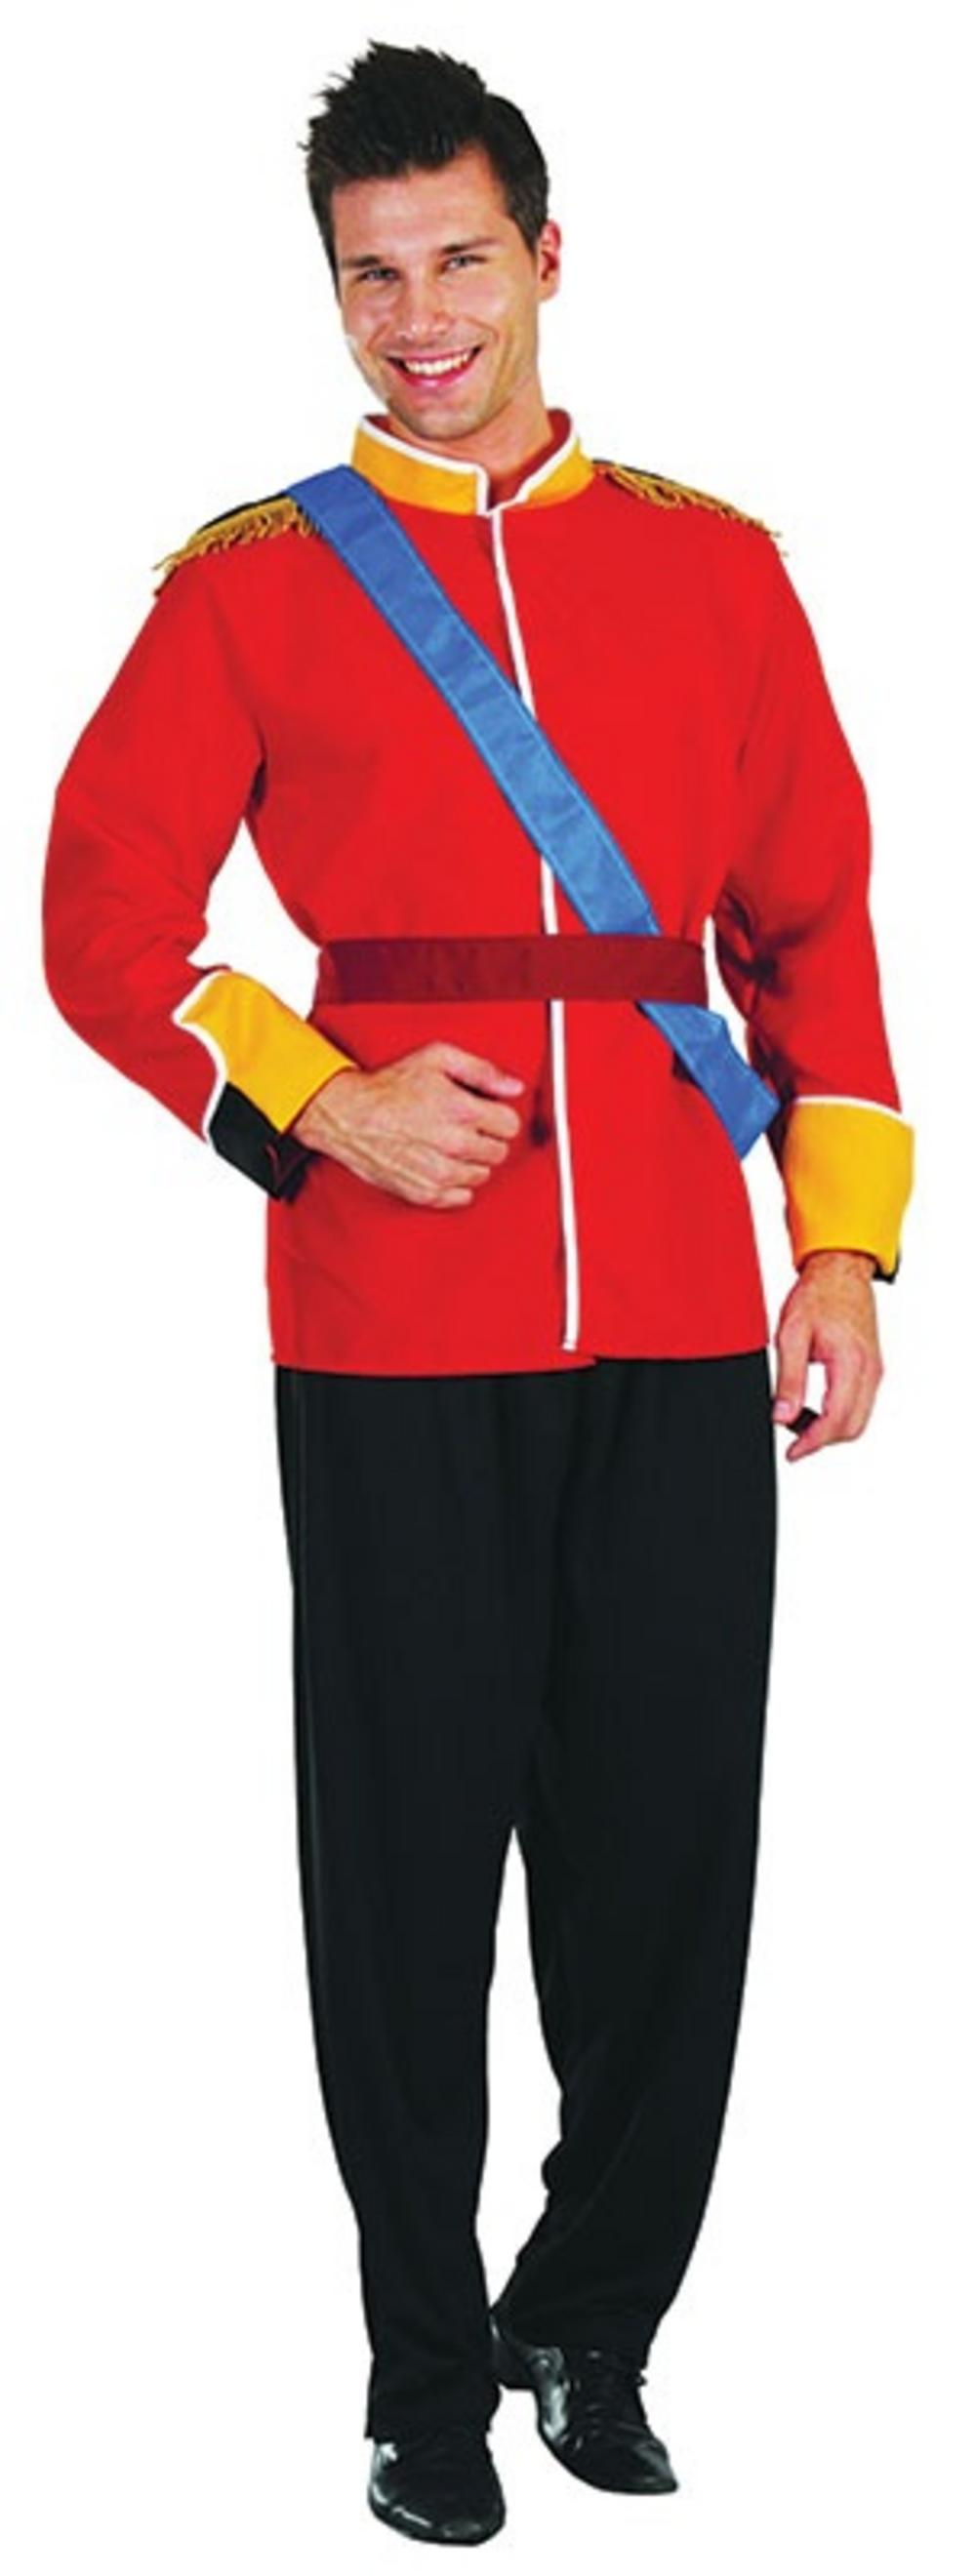 prince guys Prince costumes showing 40 of 77 results that match your query product - fairytale prince men's adult halloween costume product image price $ 32 52 - $ 32 75.